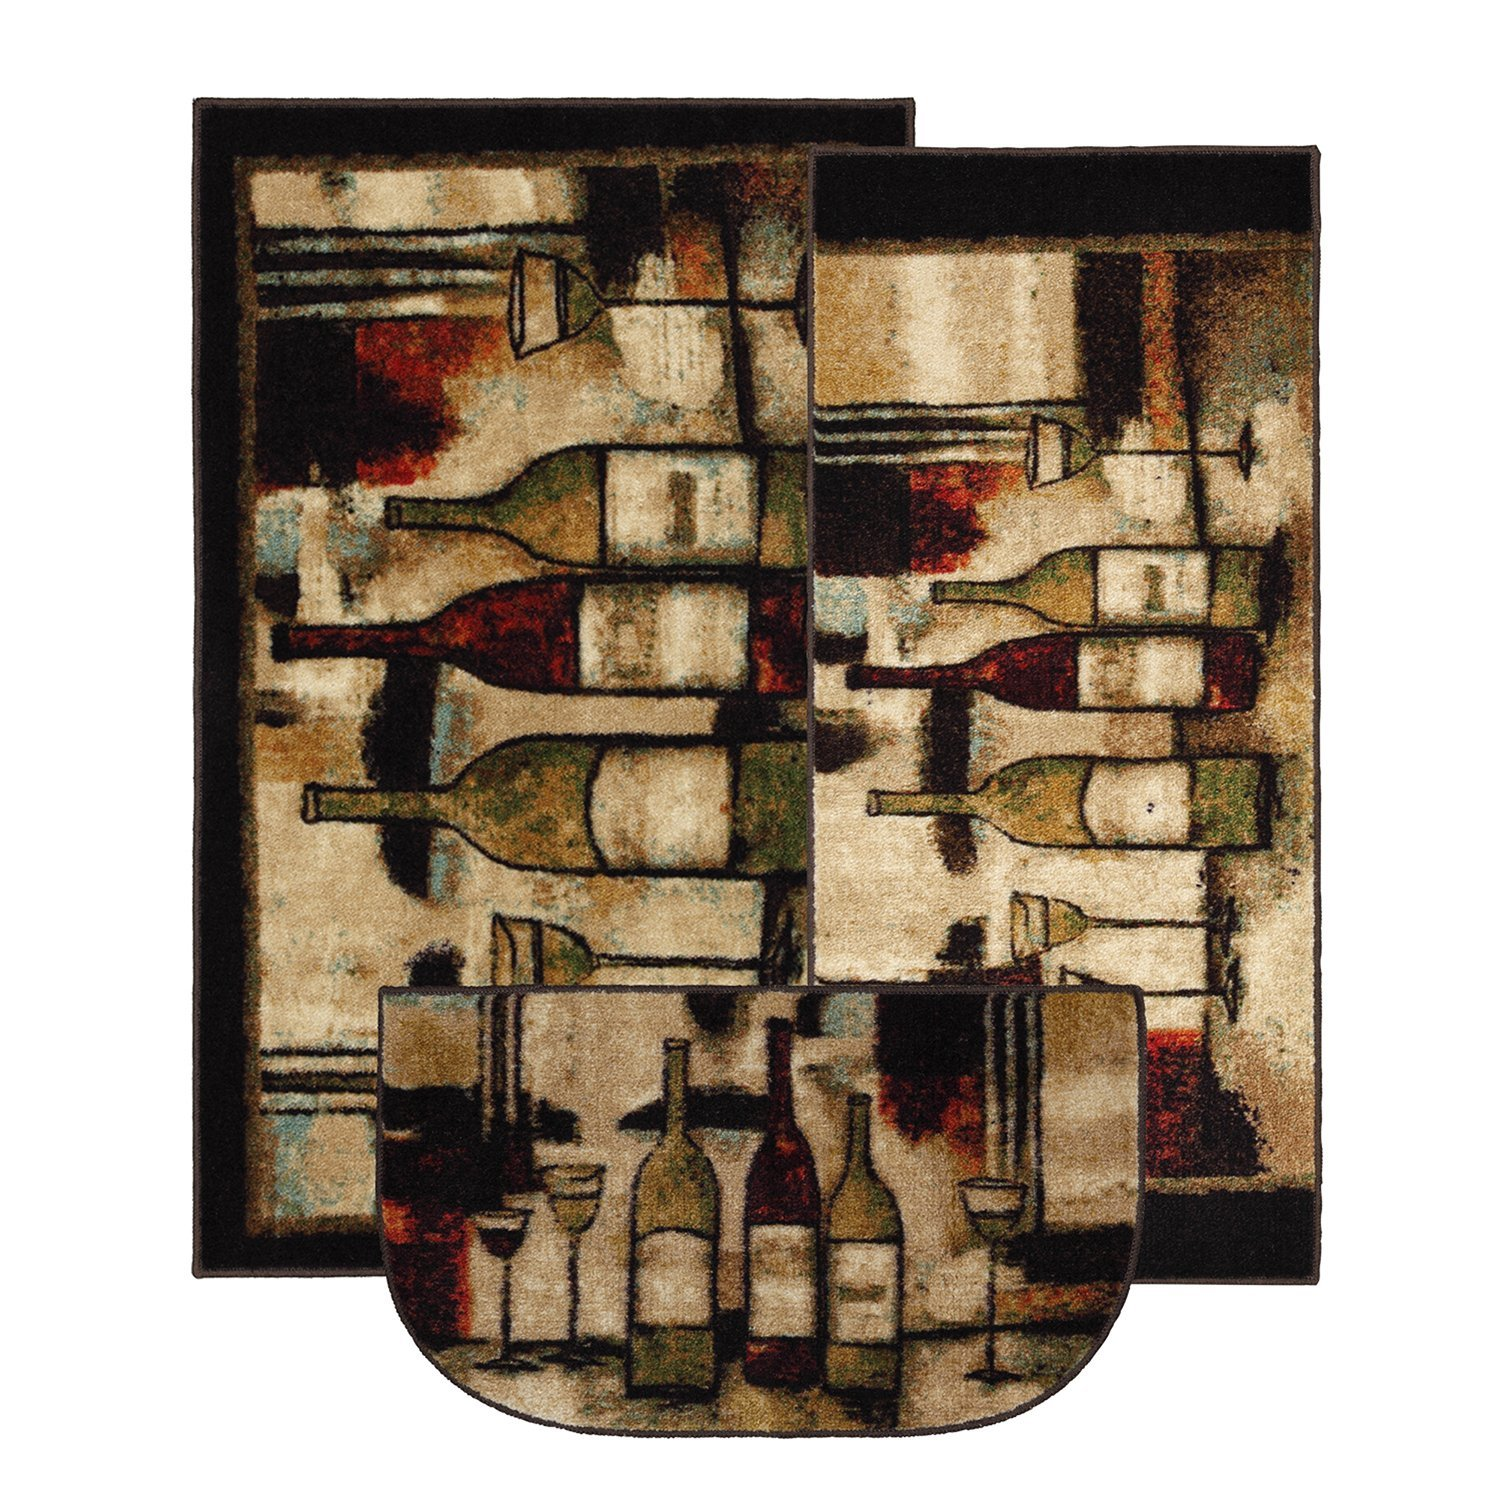 amazoncom mohawk home new wave wine and glasses printed rug 3piece rug set brown kitchen u0026 dining - Rug Sets